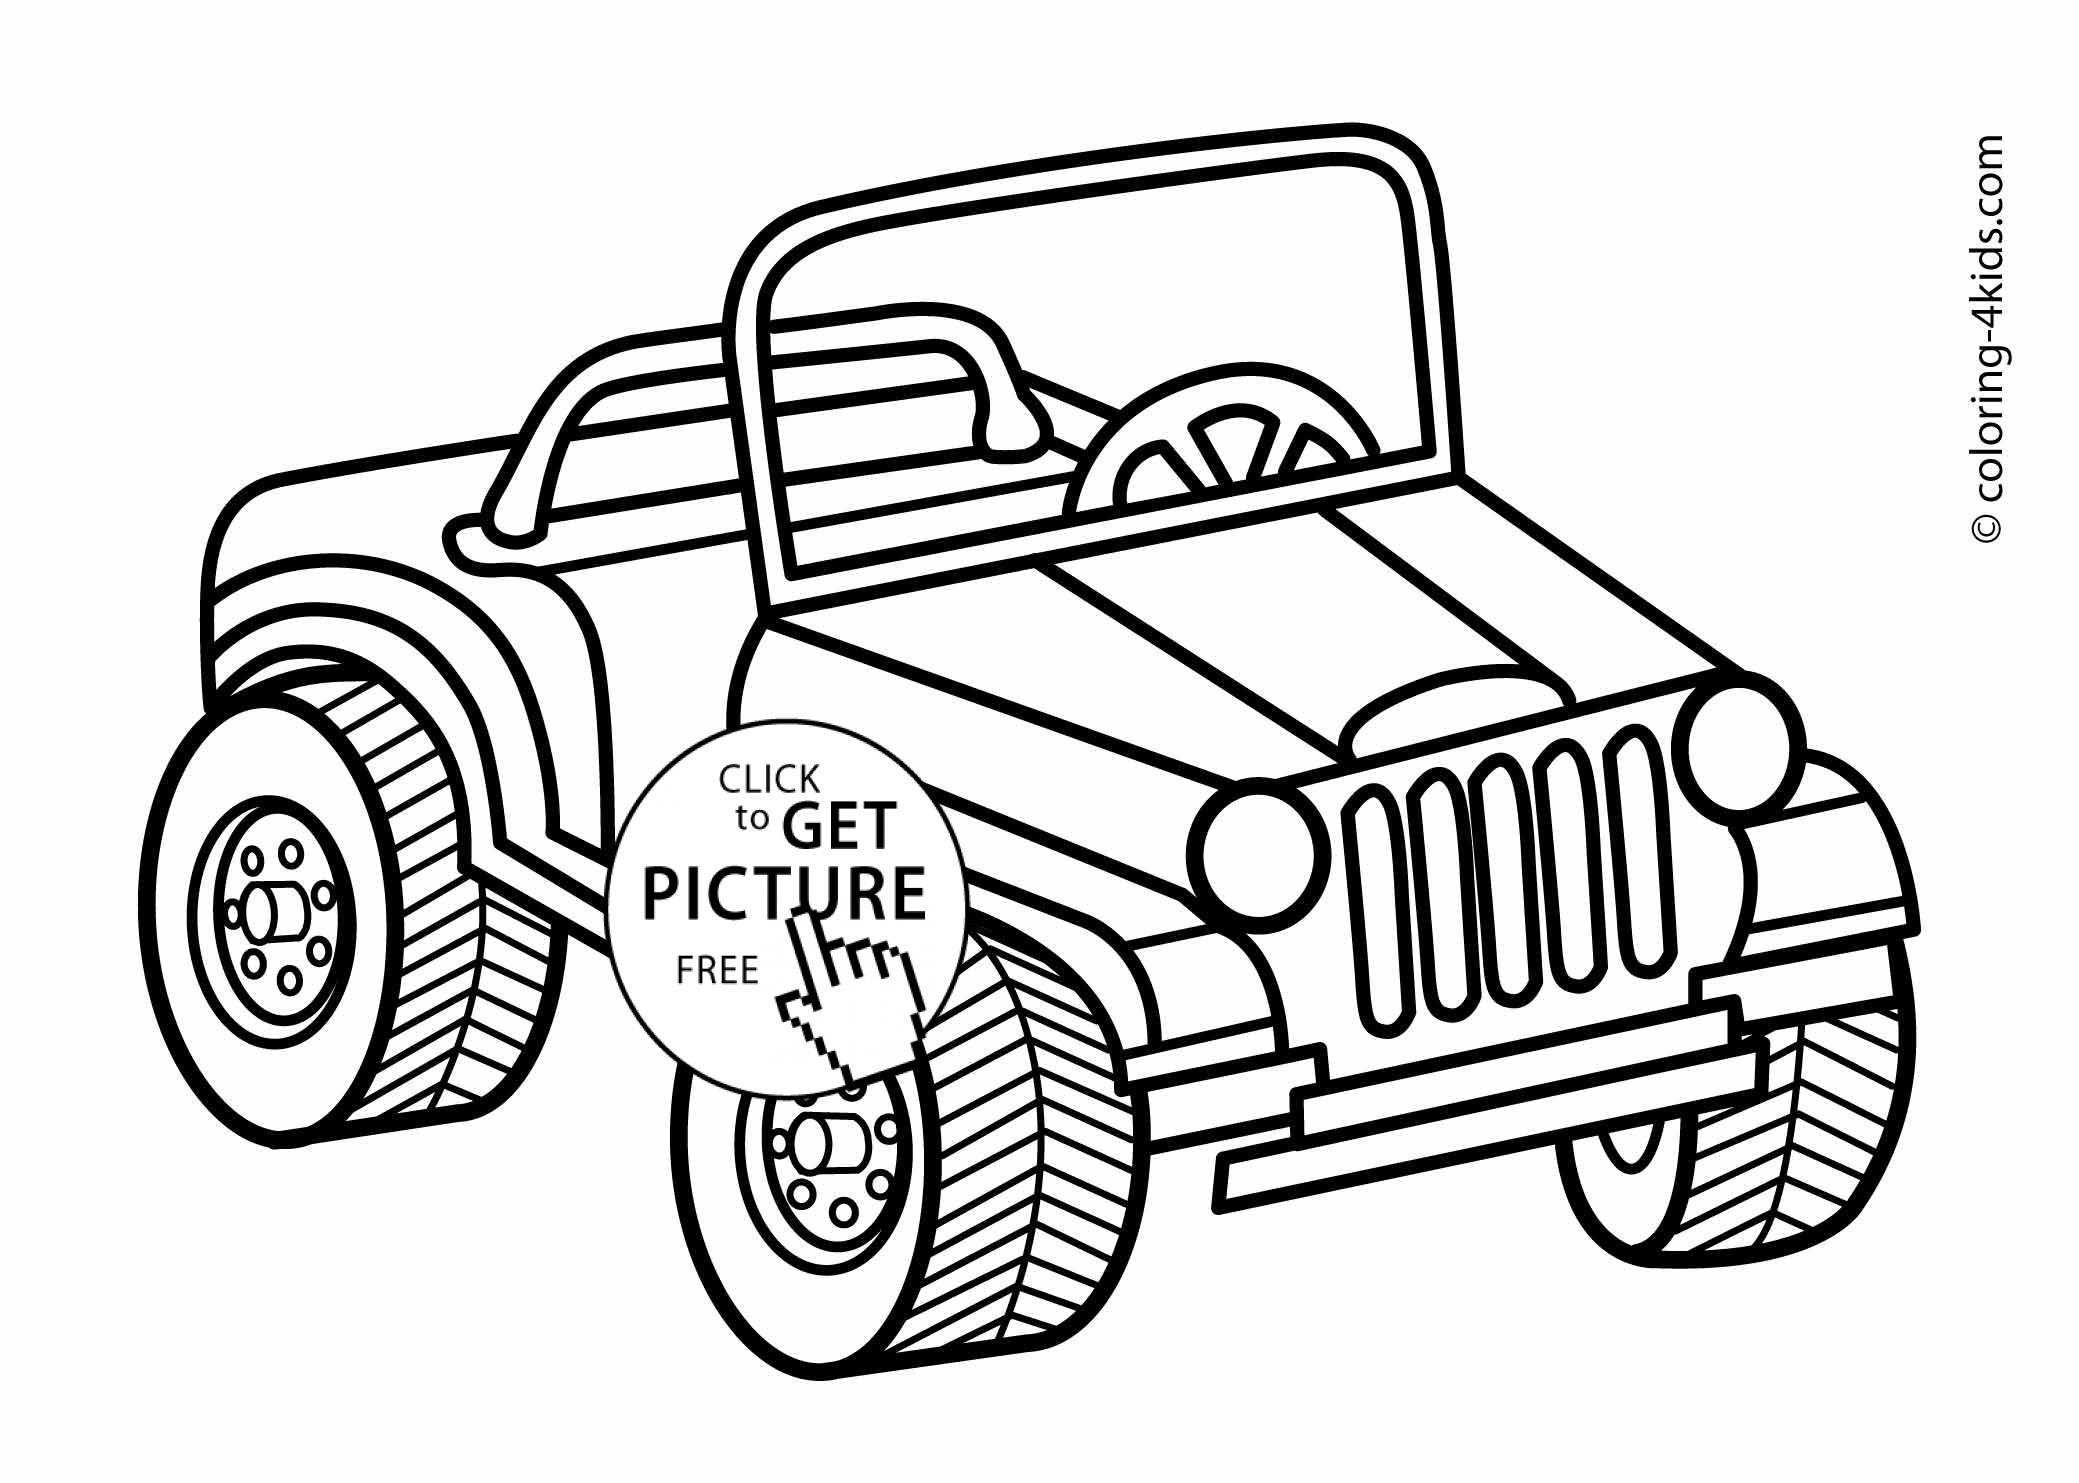 Jeep transportation coloring pages for kids, printable